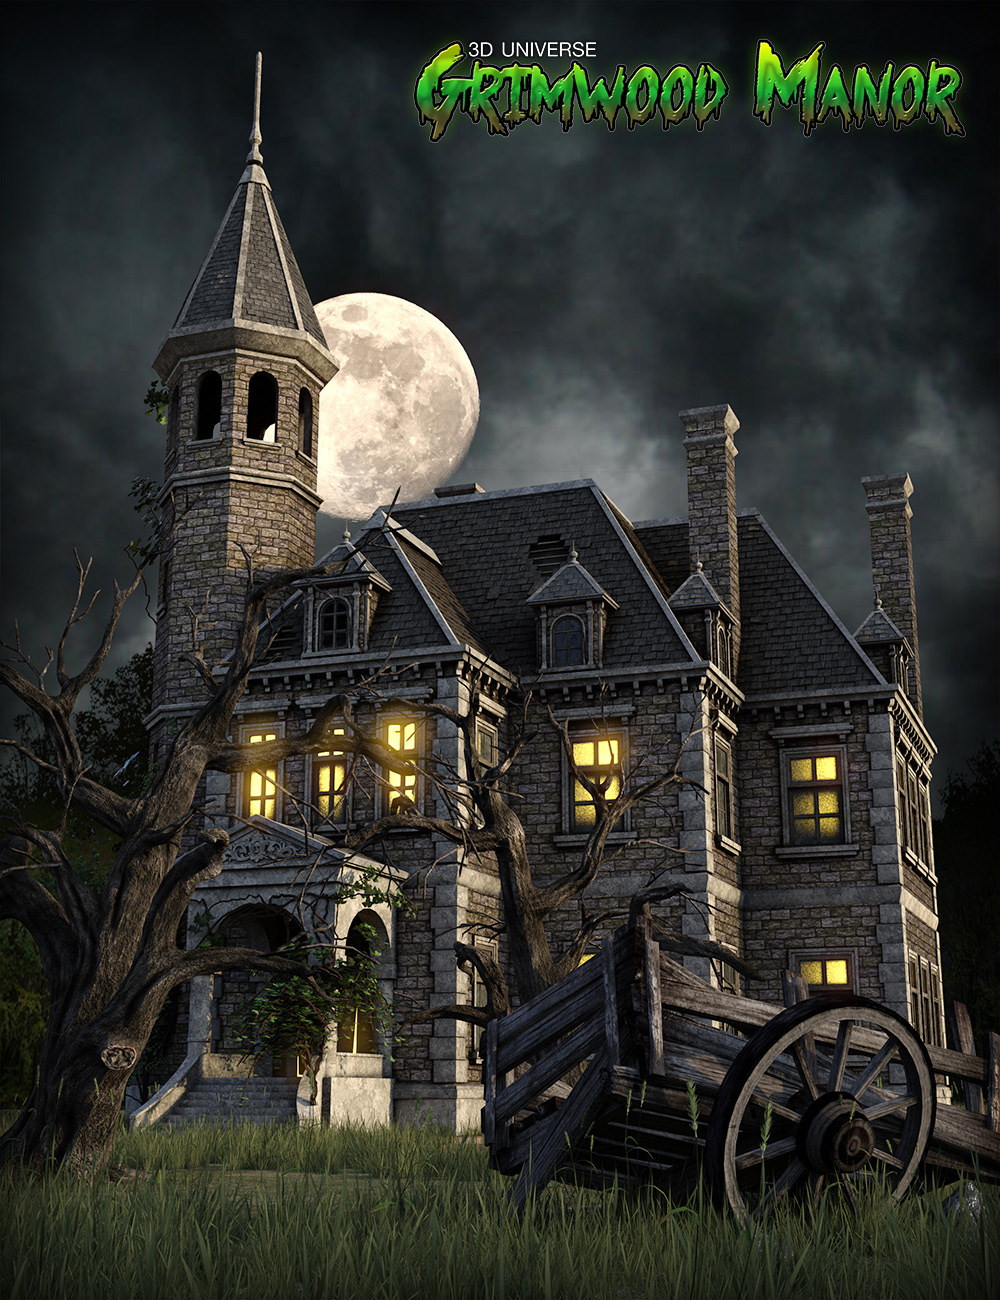 Grimwood Manor by: 3D Universe, 3D Models by Daz 3D